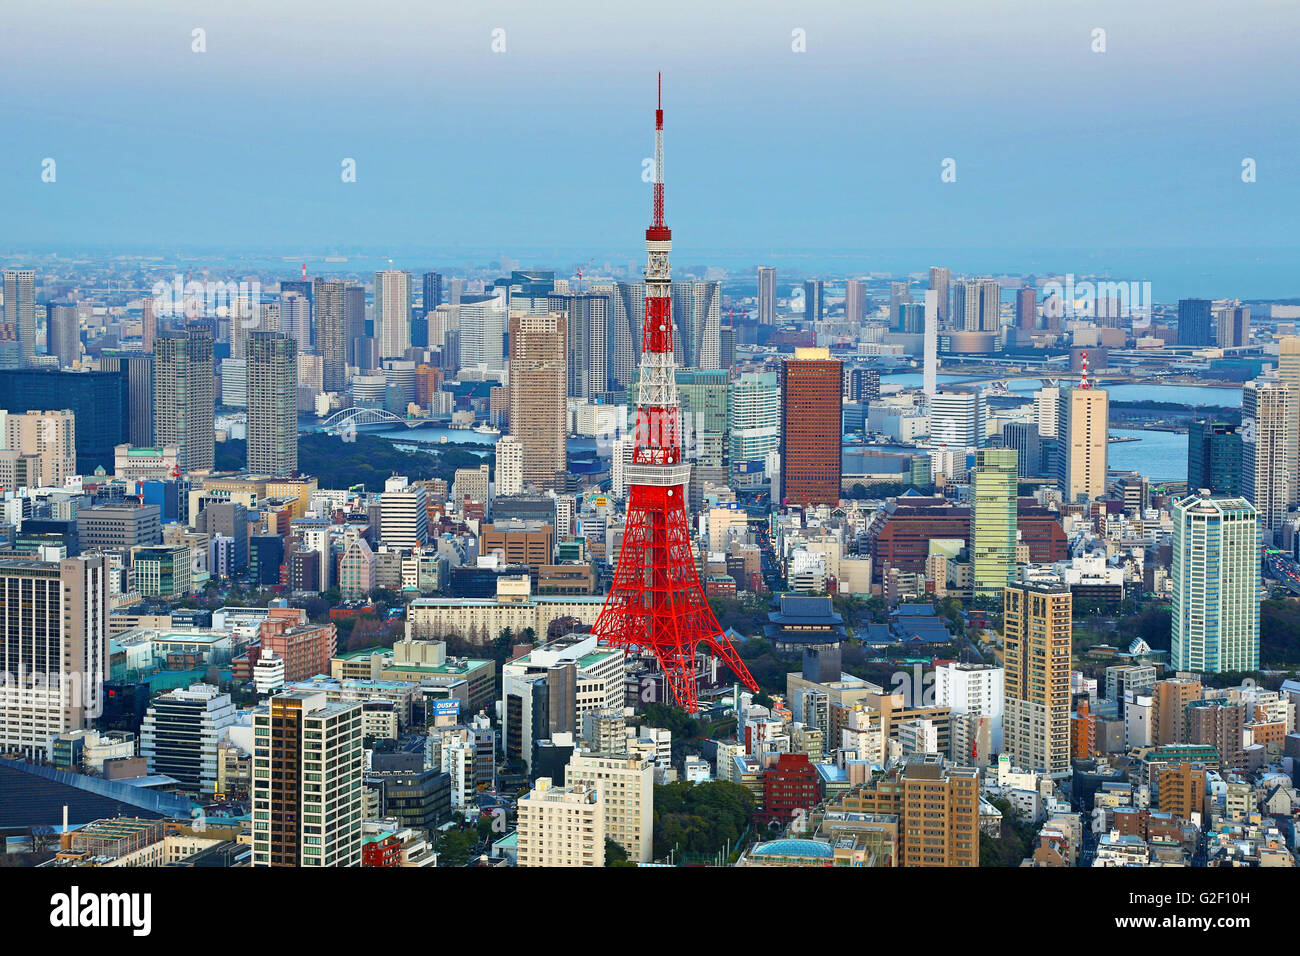 General city skyline evening view with the Tokyo Tower of Tokyo, Japan - Stock Image